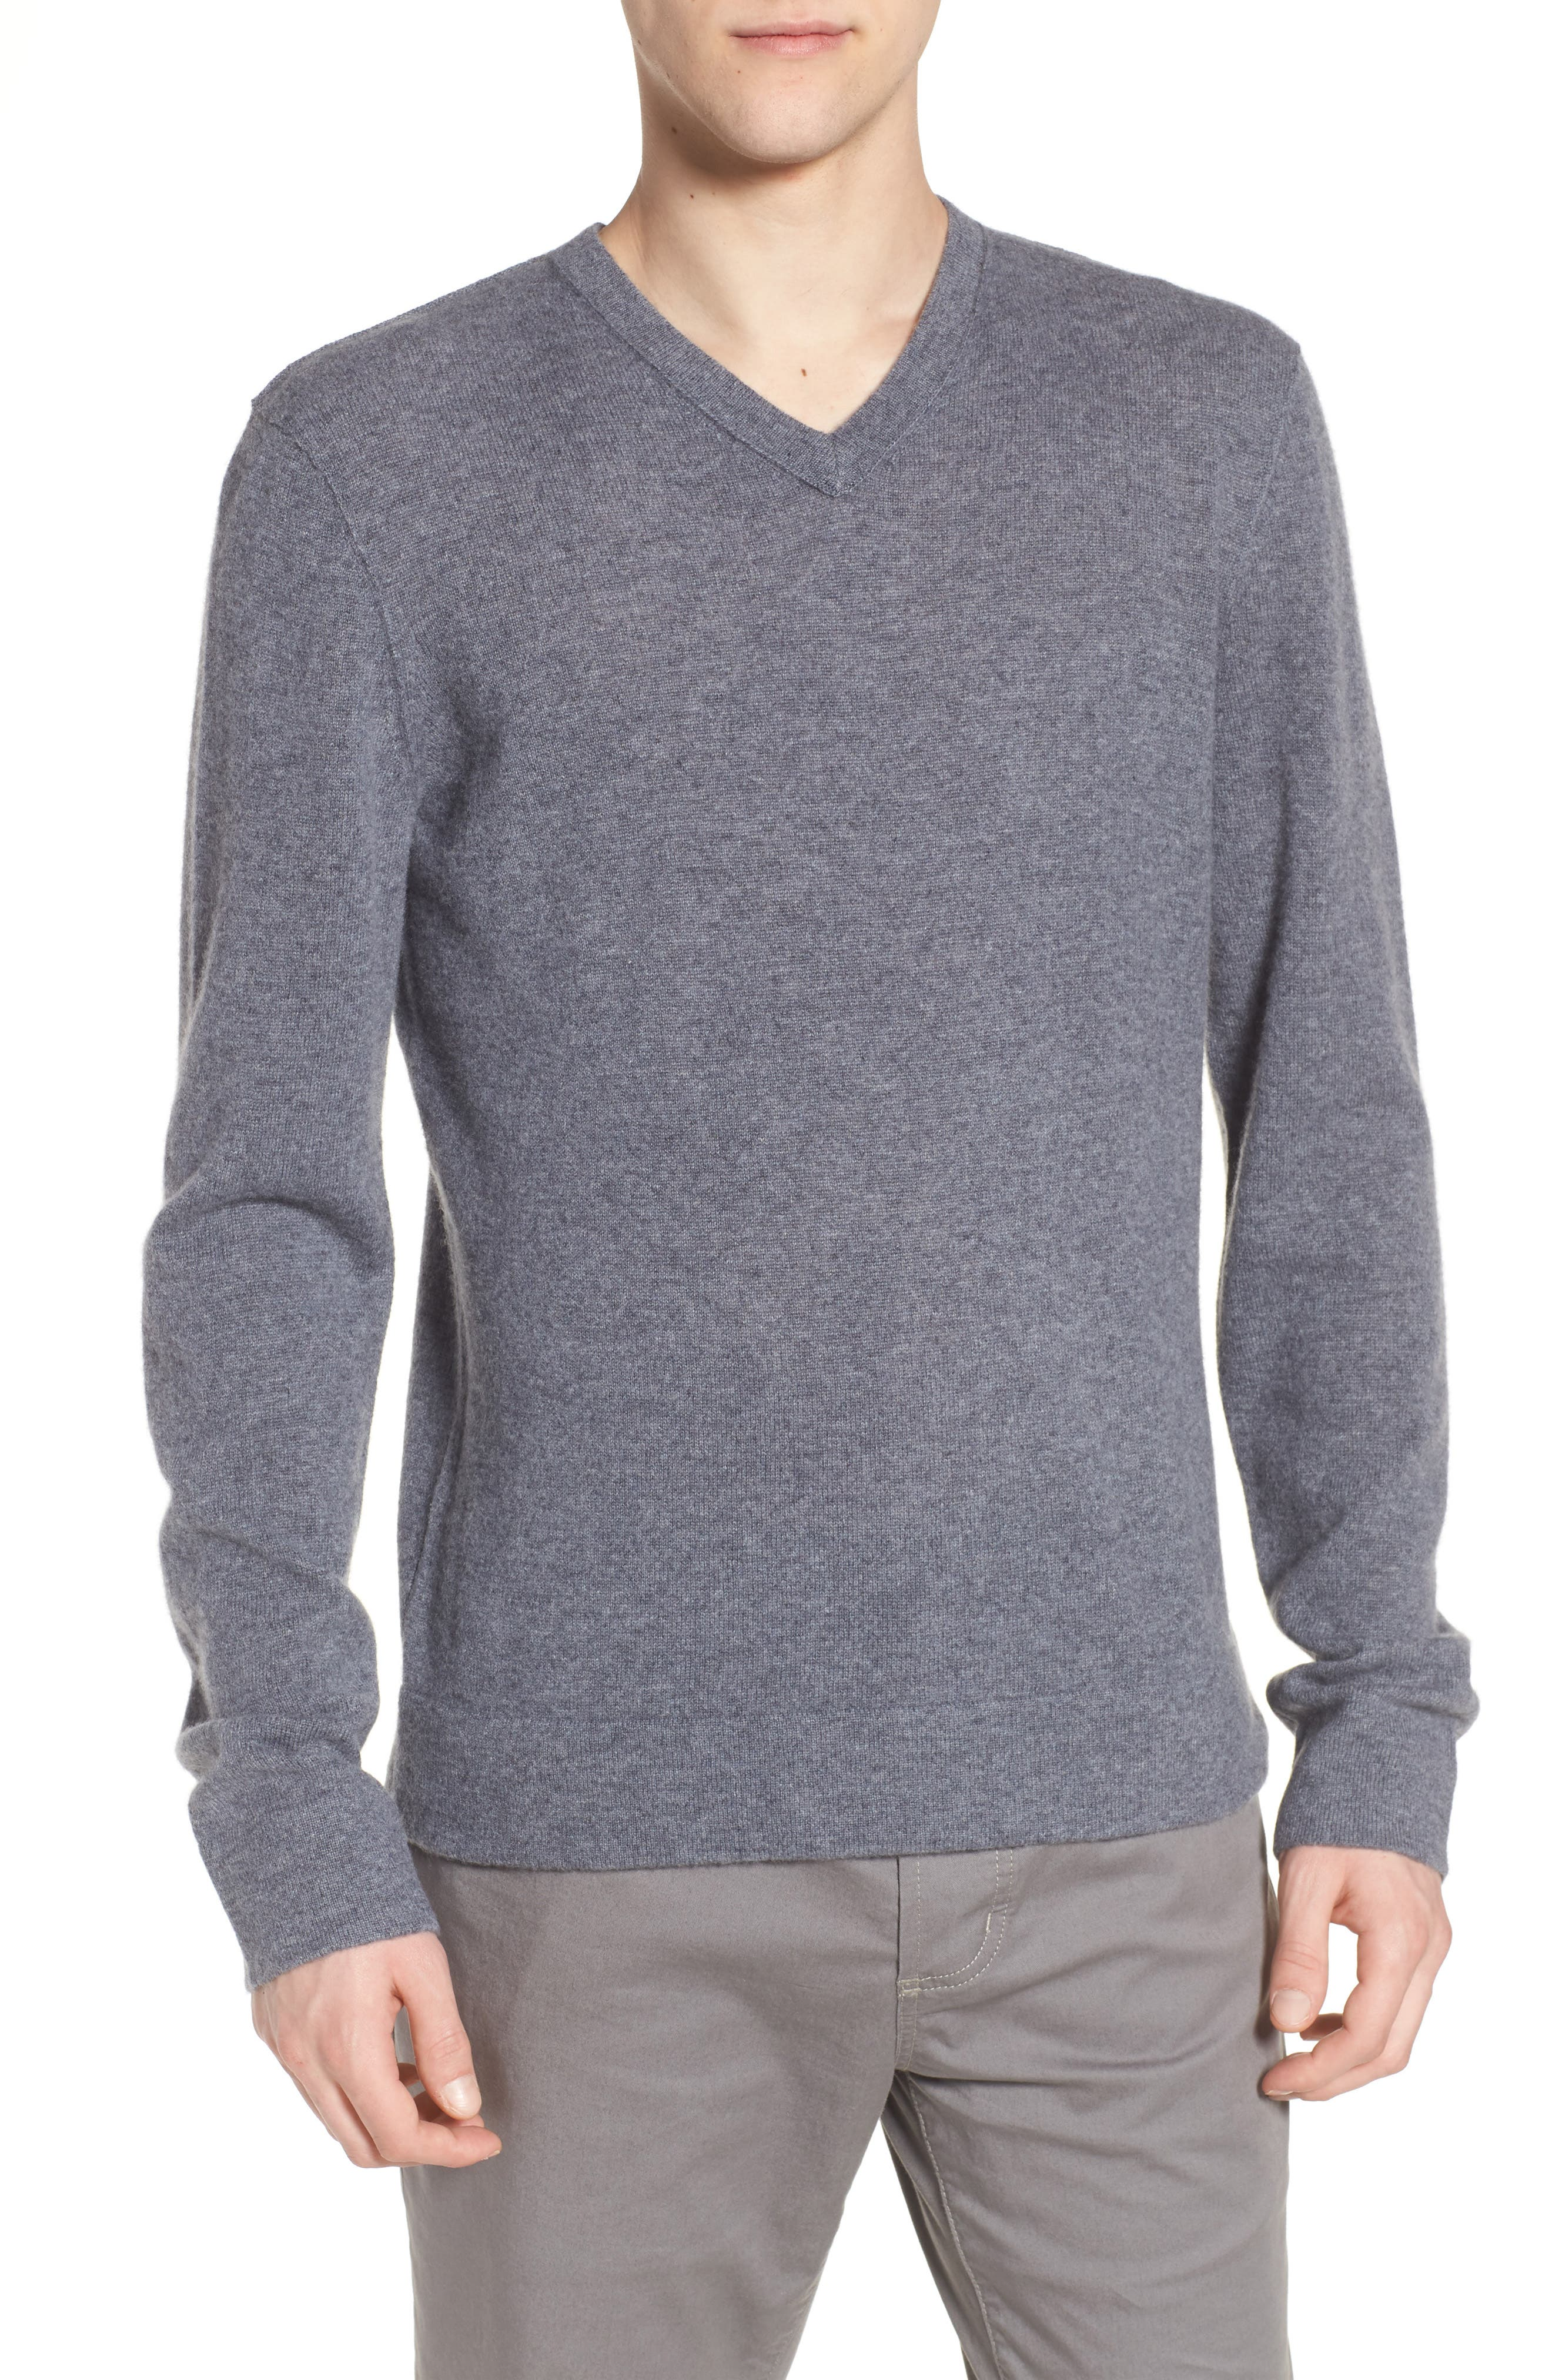 Main Image - James Perse Cashmere V-Neck Sweater